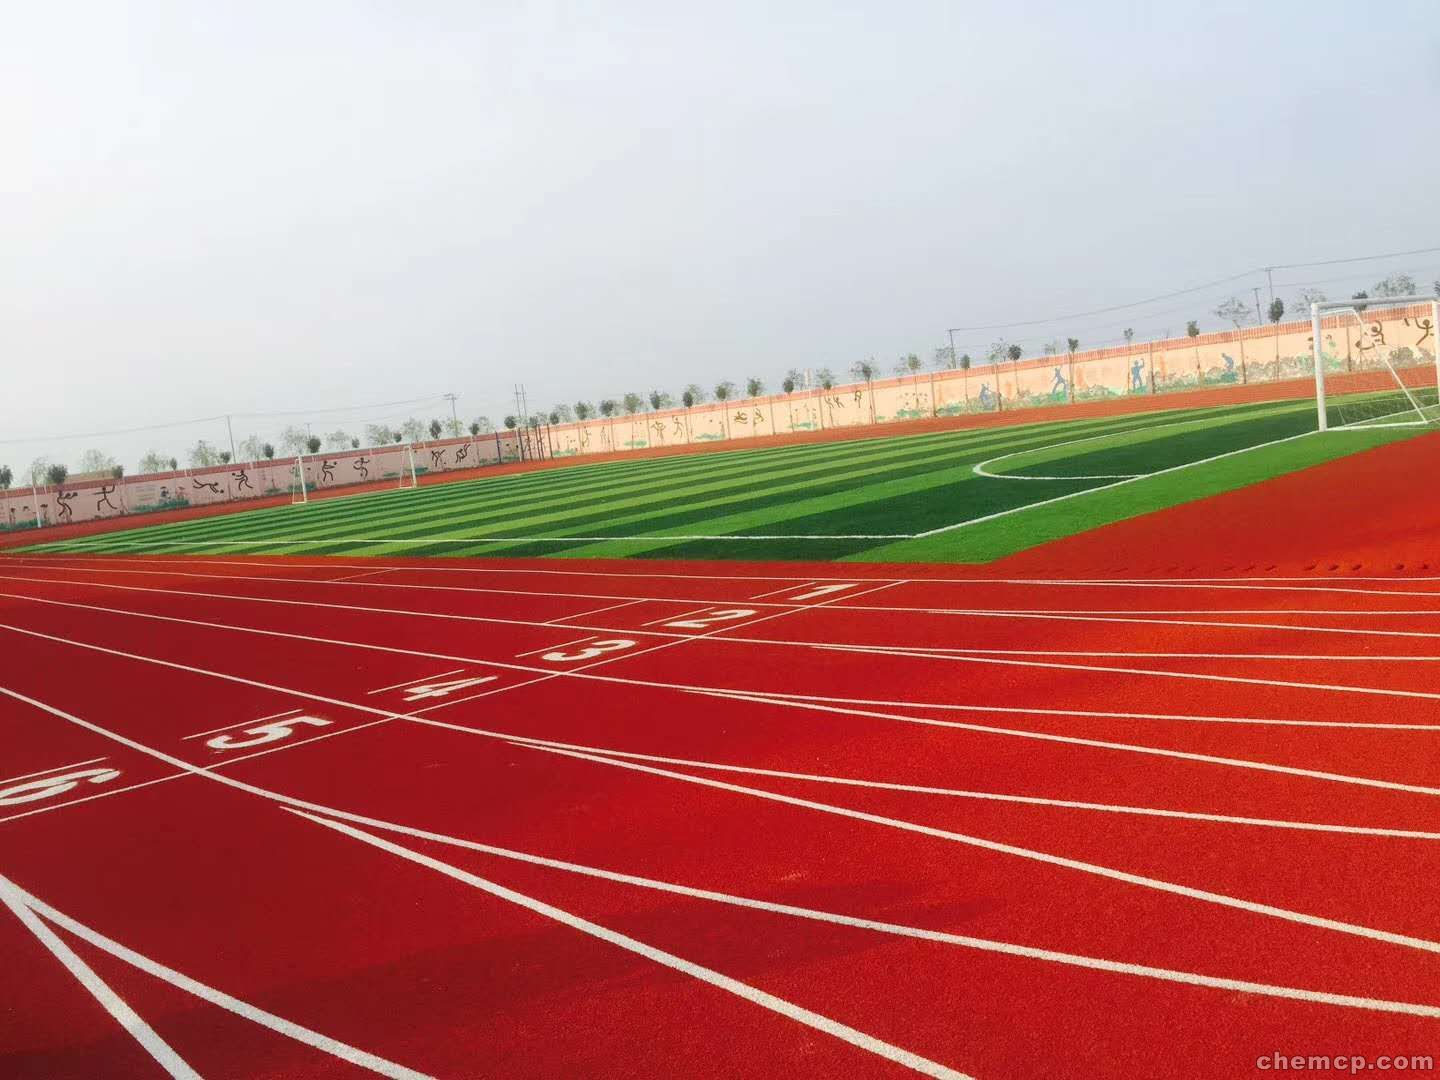 Do you understand the advantages of a plastic track?